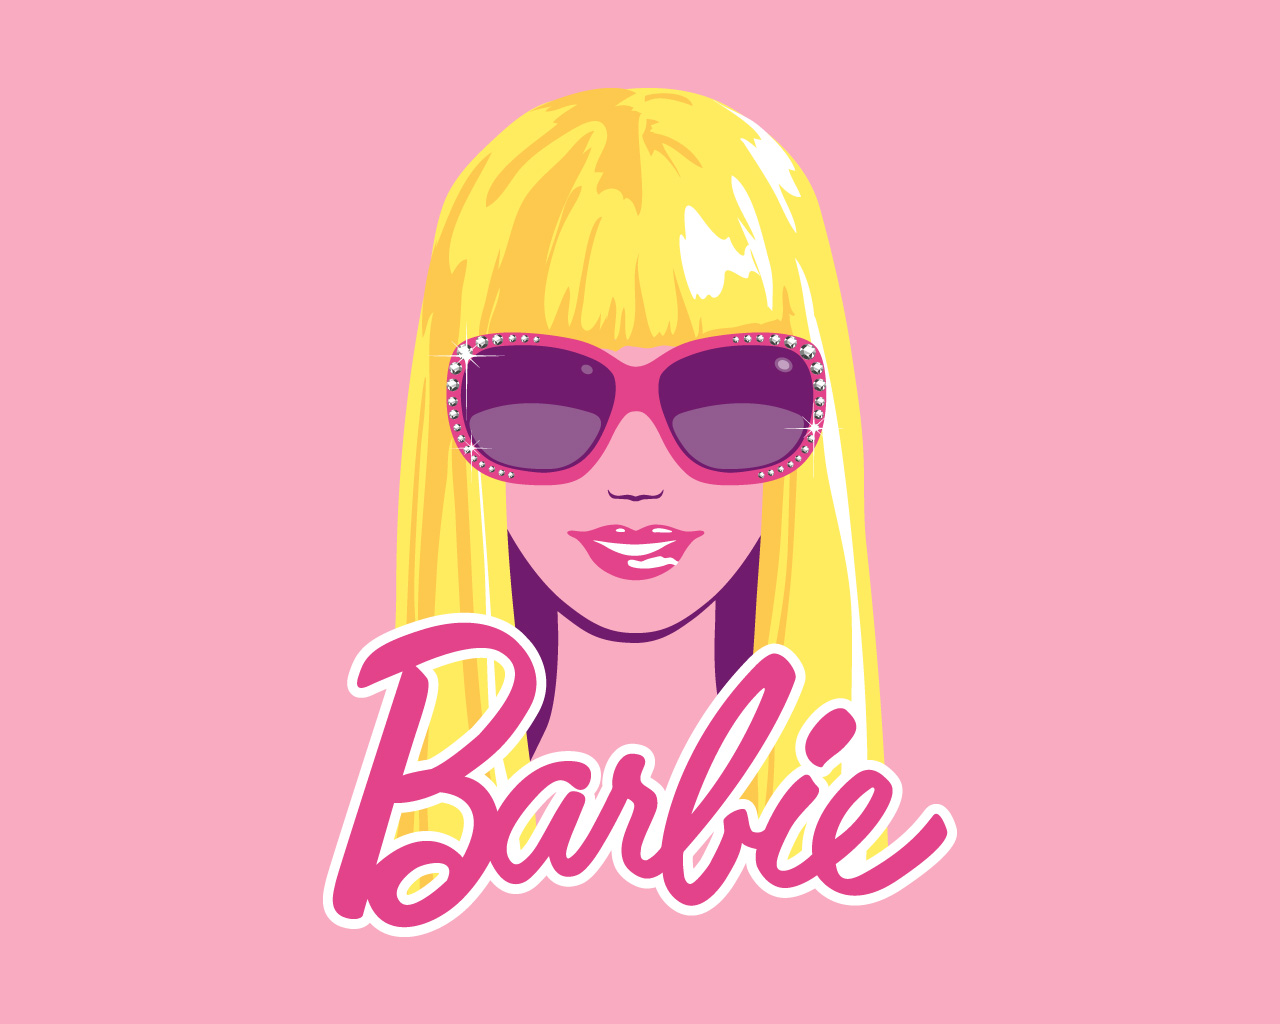 Barbie Wallpaper Windows Downlao 1280x1024